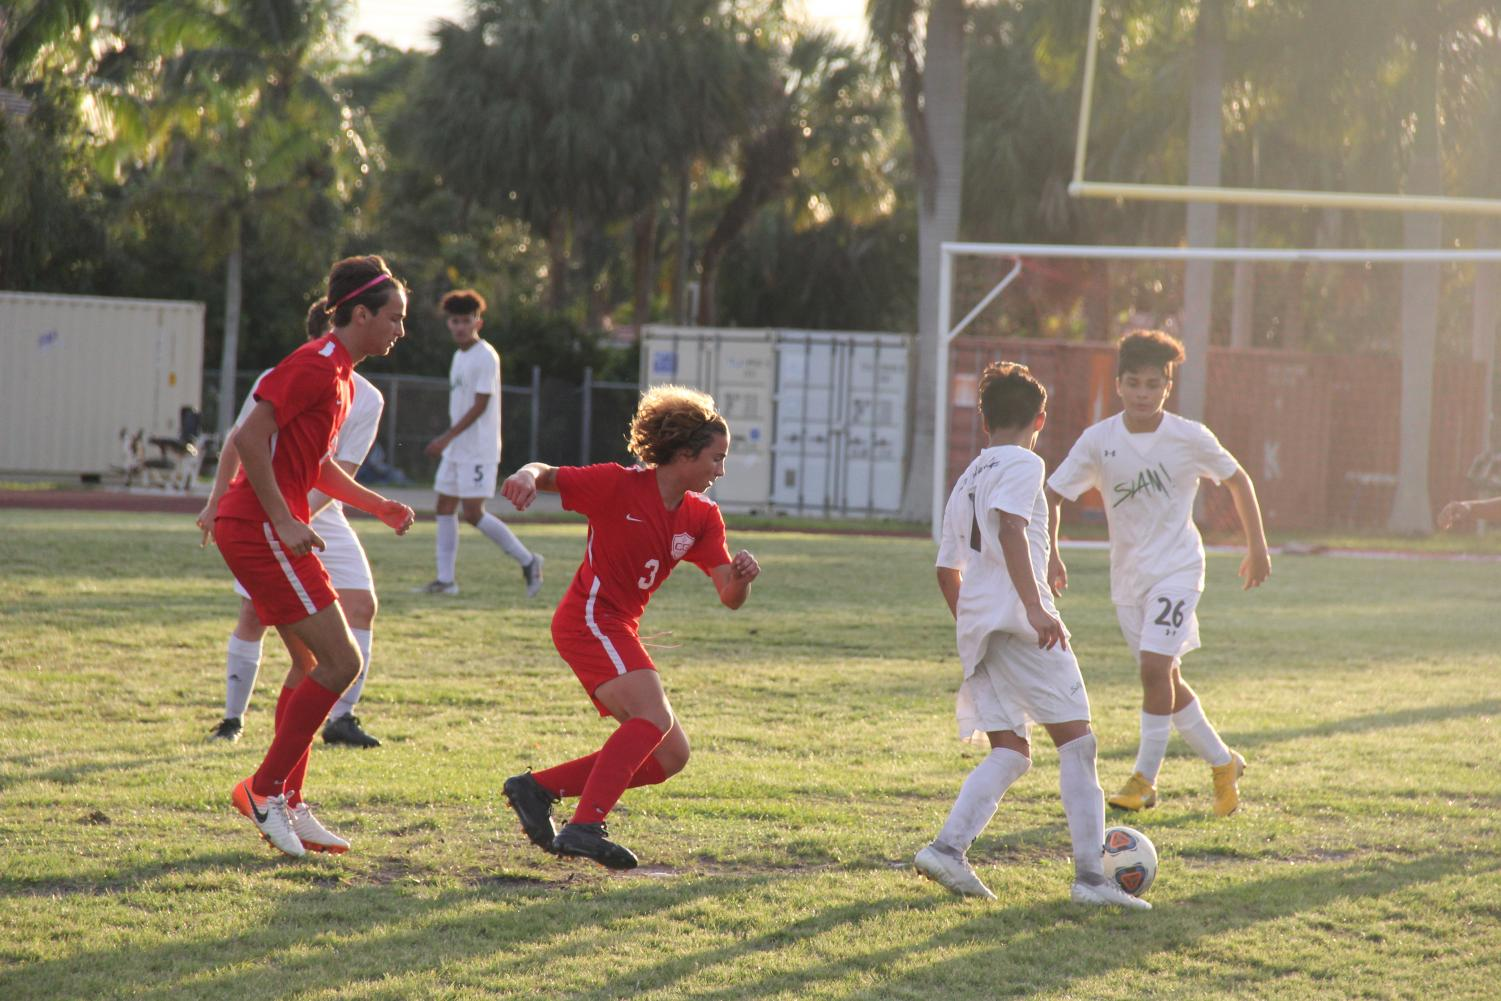 The Coral Gables Cavaliers fighting to regain possession of the soccer ball from SLAM, where the Cavaliers showed their offensive prowess with a 5-1 victory.